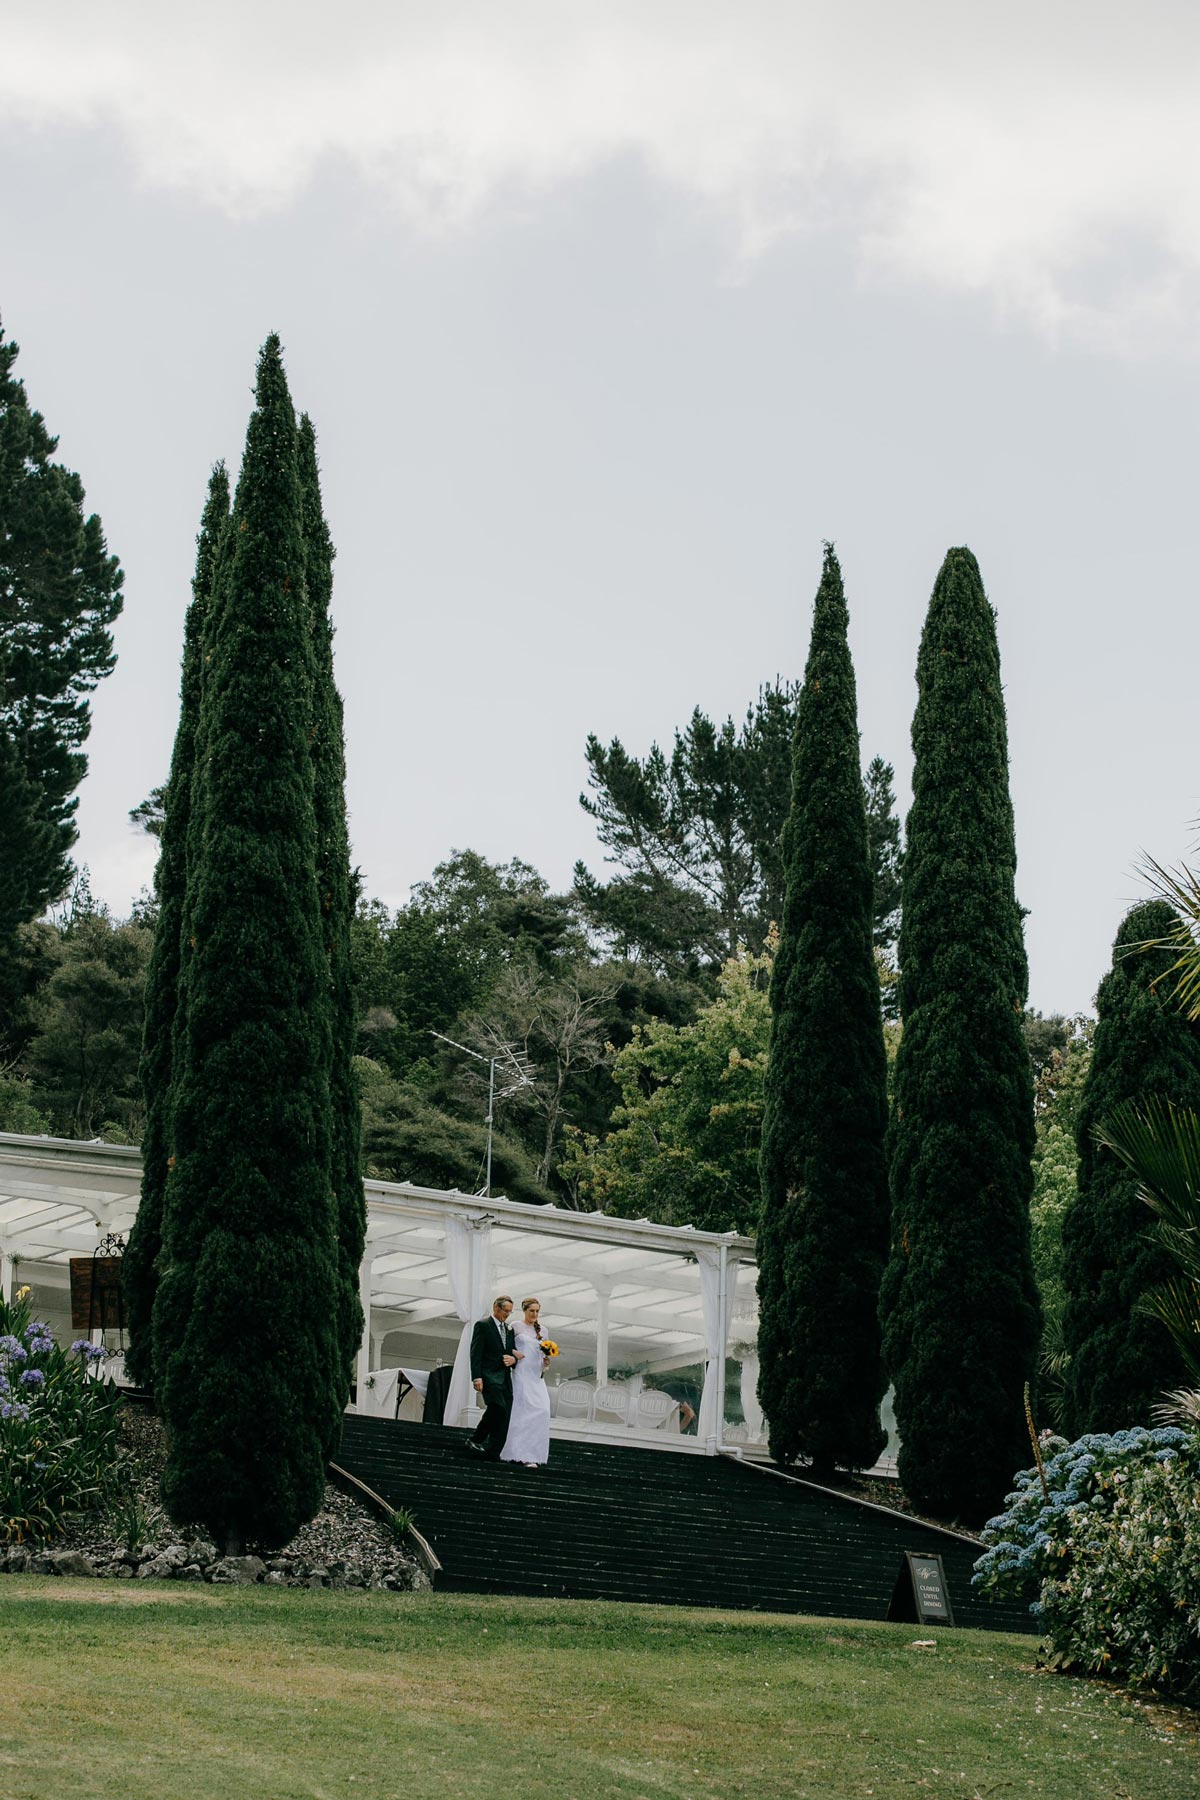 garden wedding ceremony bridgewater country estate venue in Kaukapakapa, Auckland photo by sarah weber photography